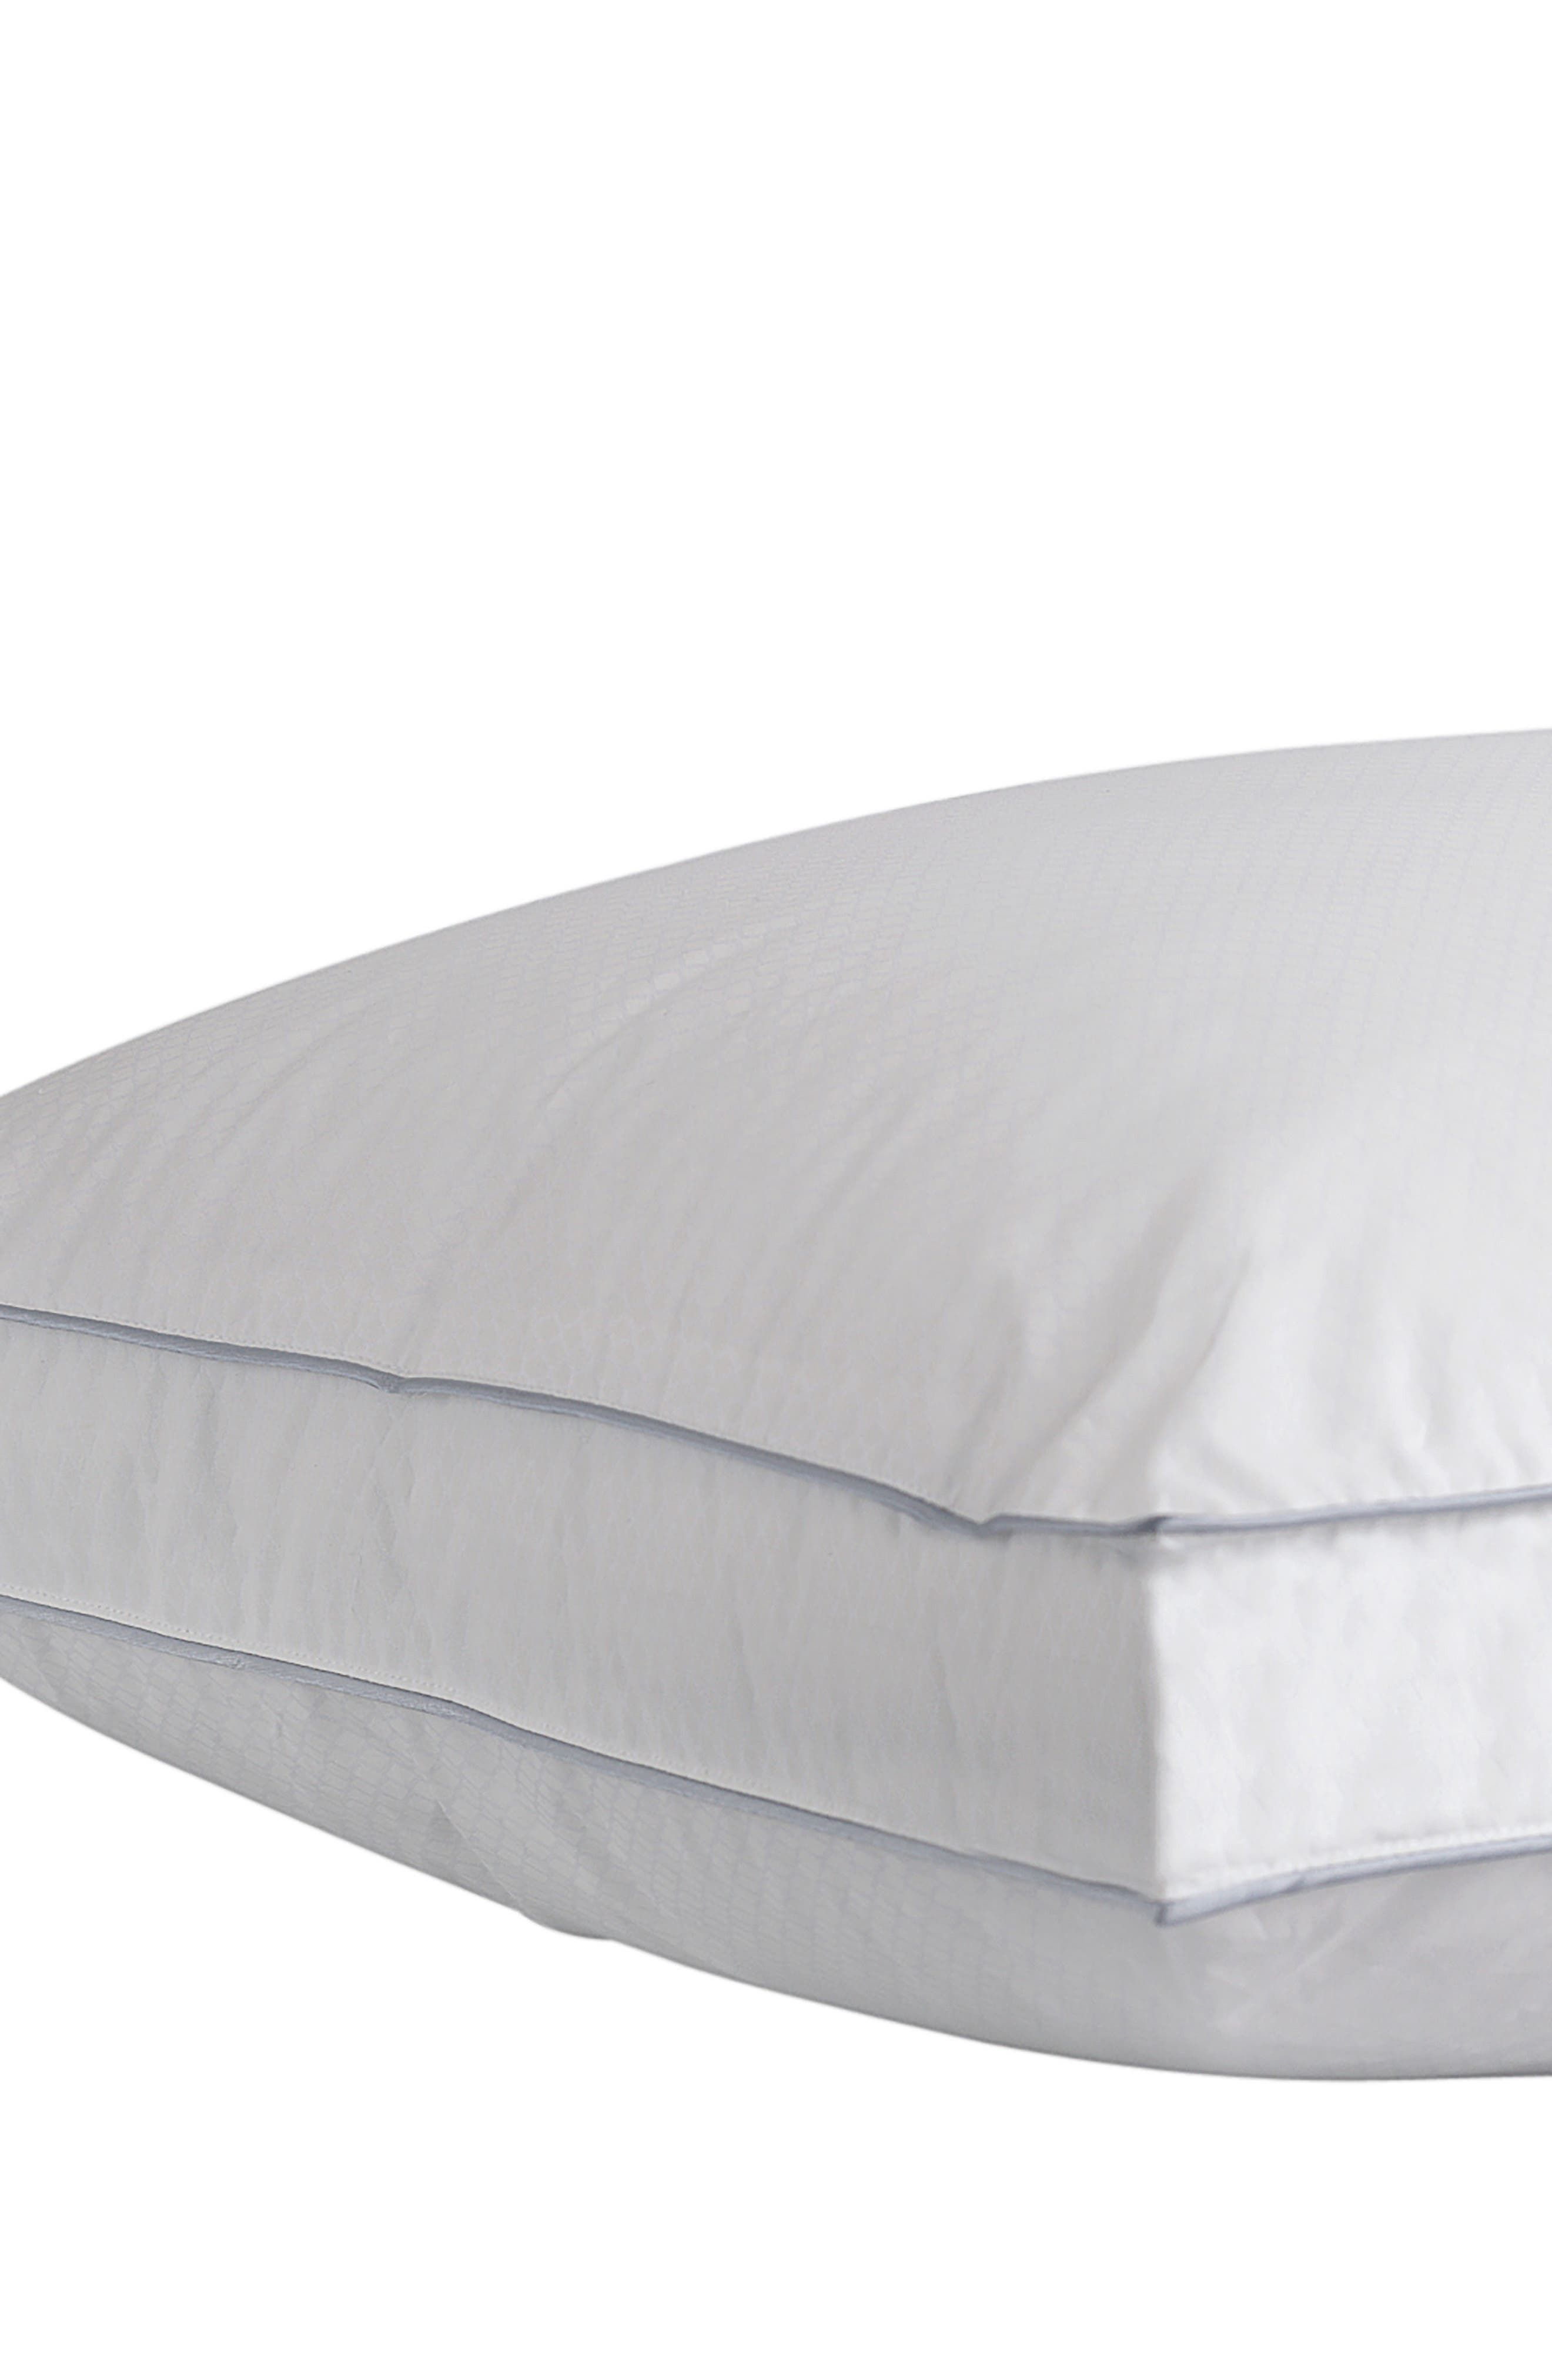 Gusseted Pillow,                             Main thumbnail 1, color,                             White